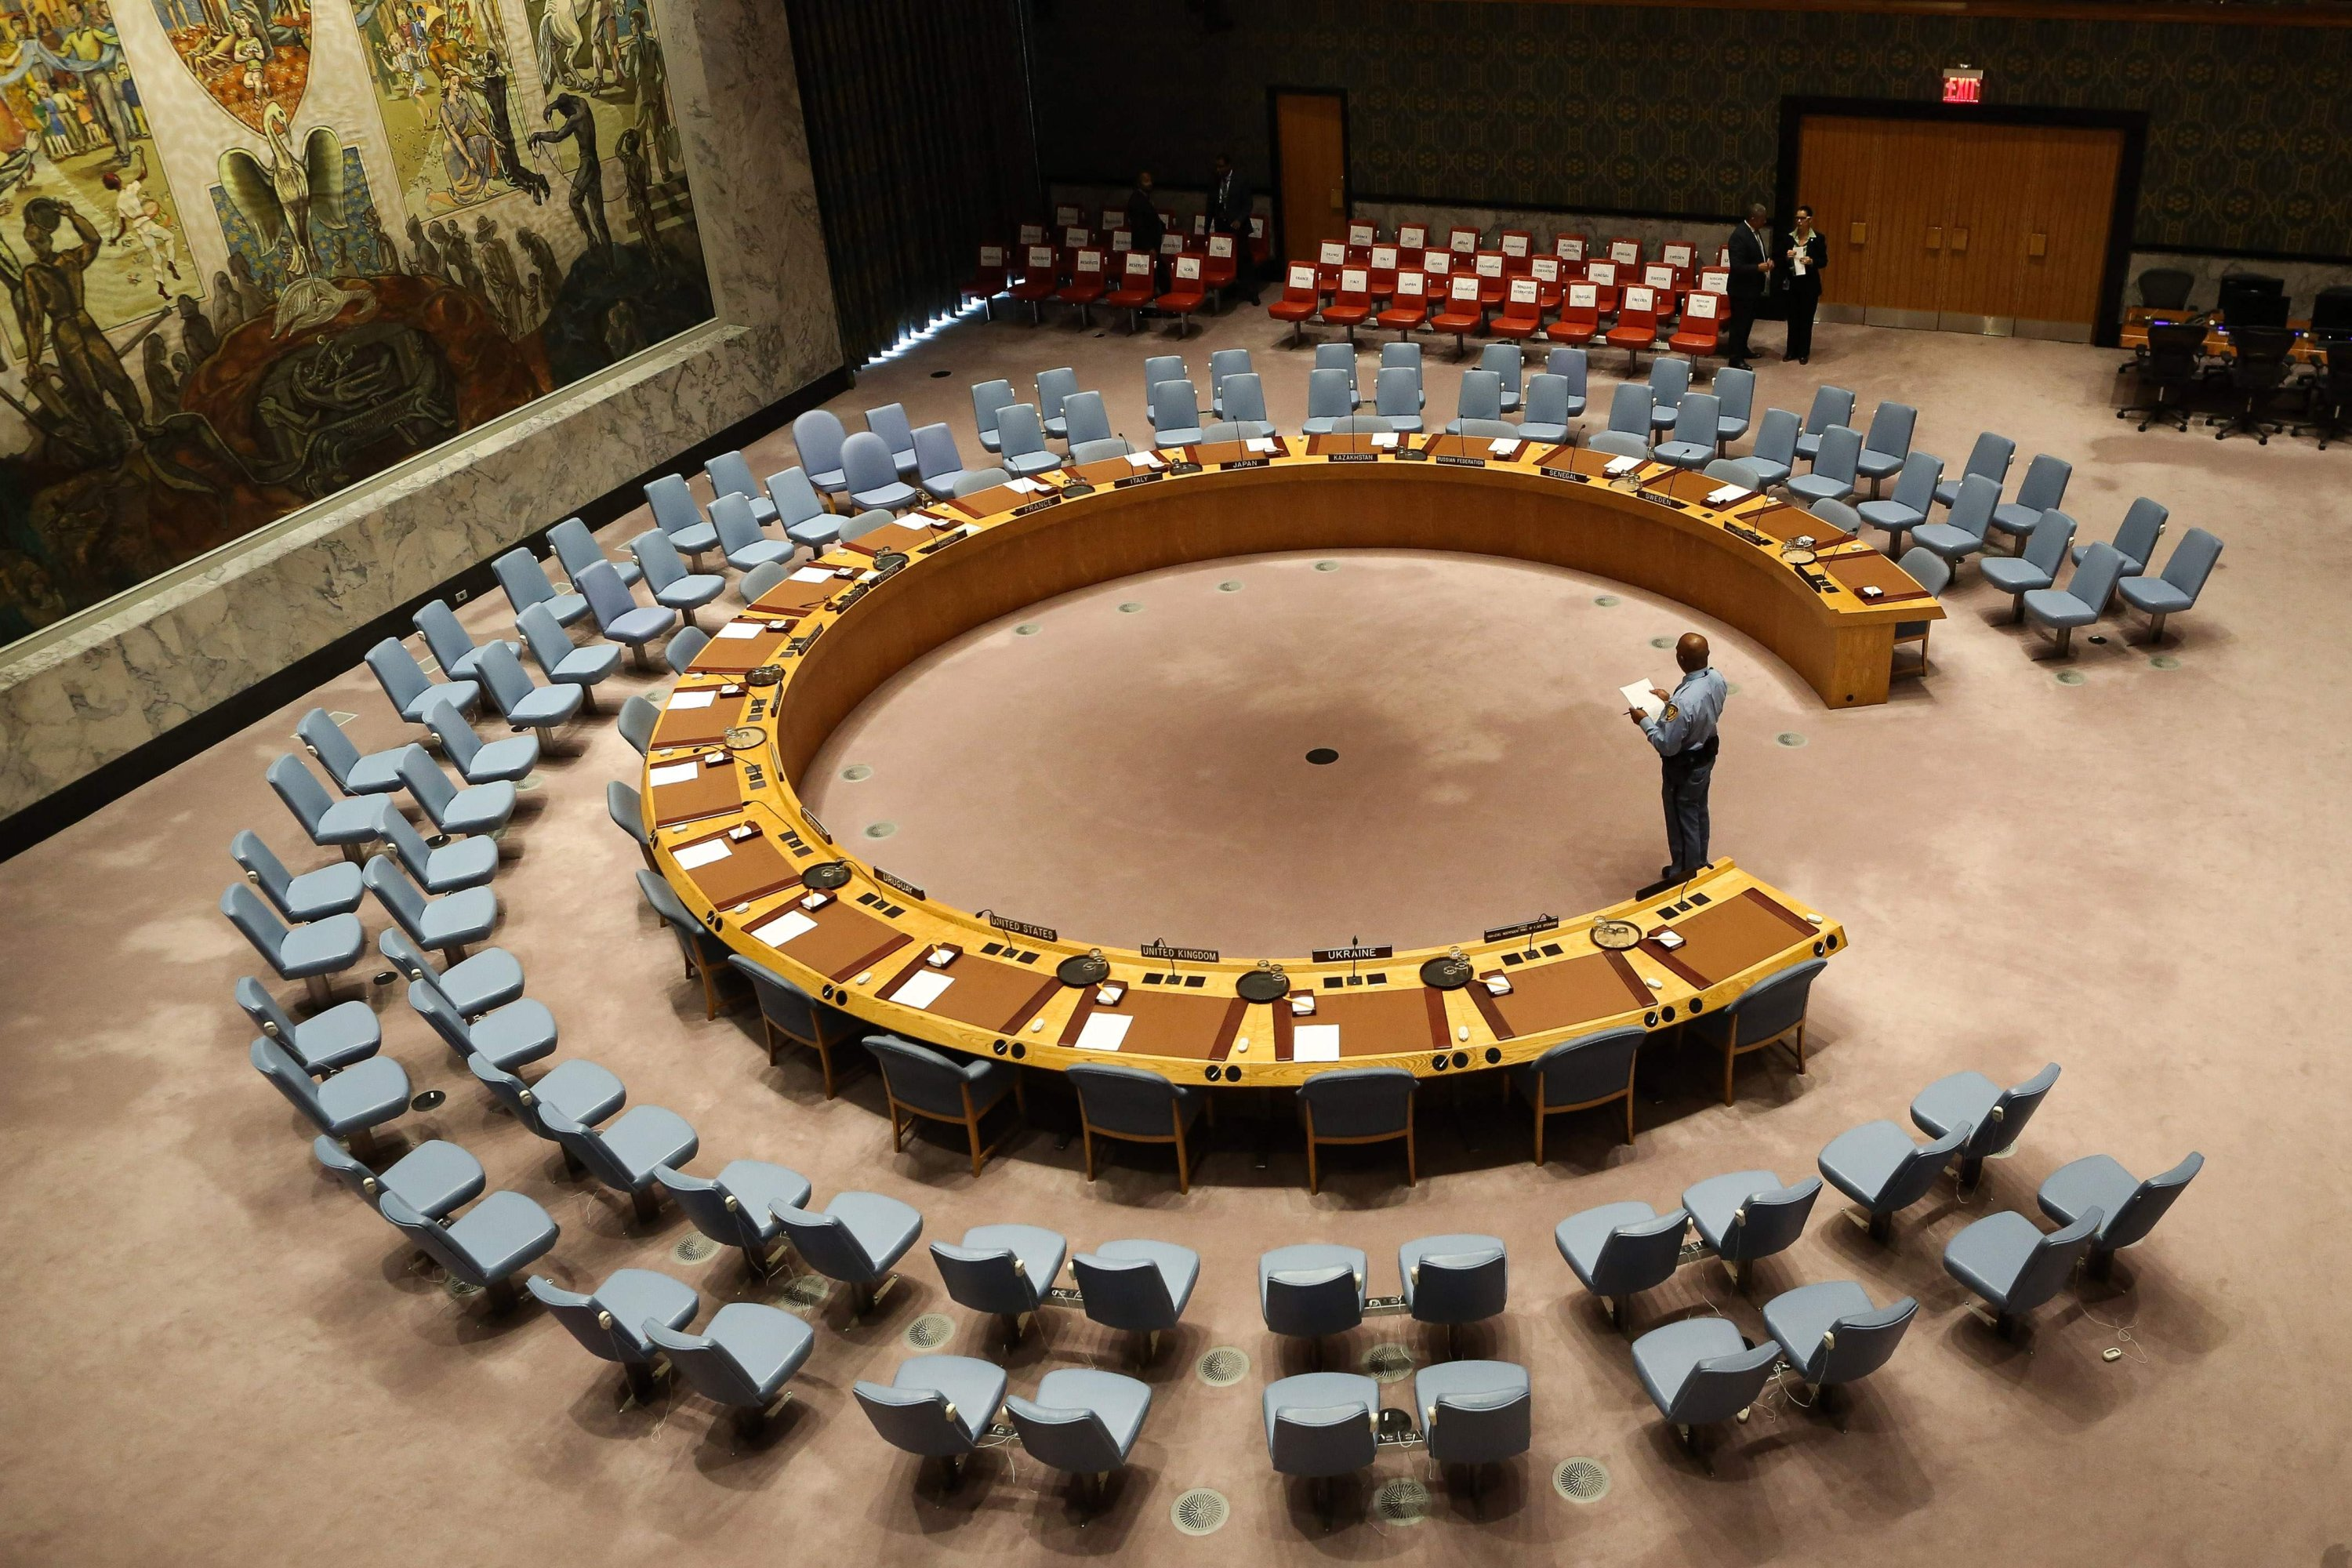 An official looks at the empty chairs of leaders ahead of their participation in an open debate of the United Nations Security Council in New York City,  on Sept. 20, 2017. (AFP Photo)